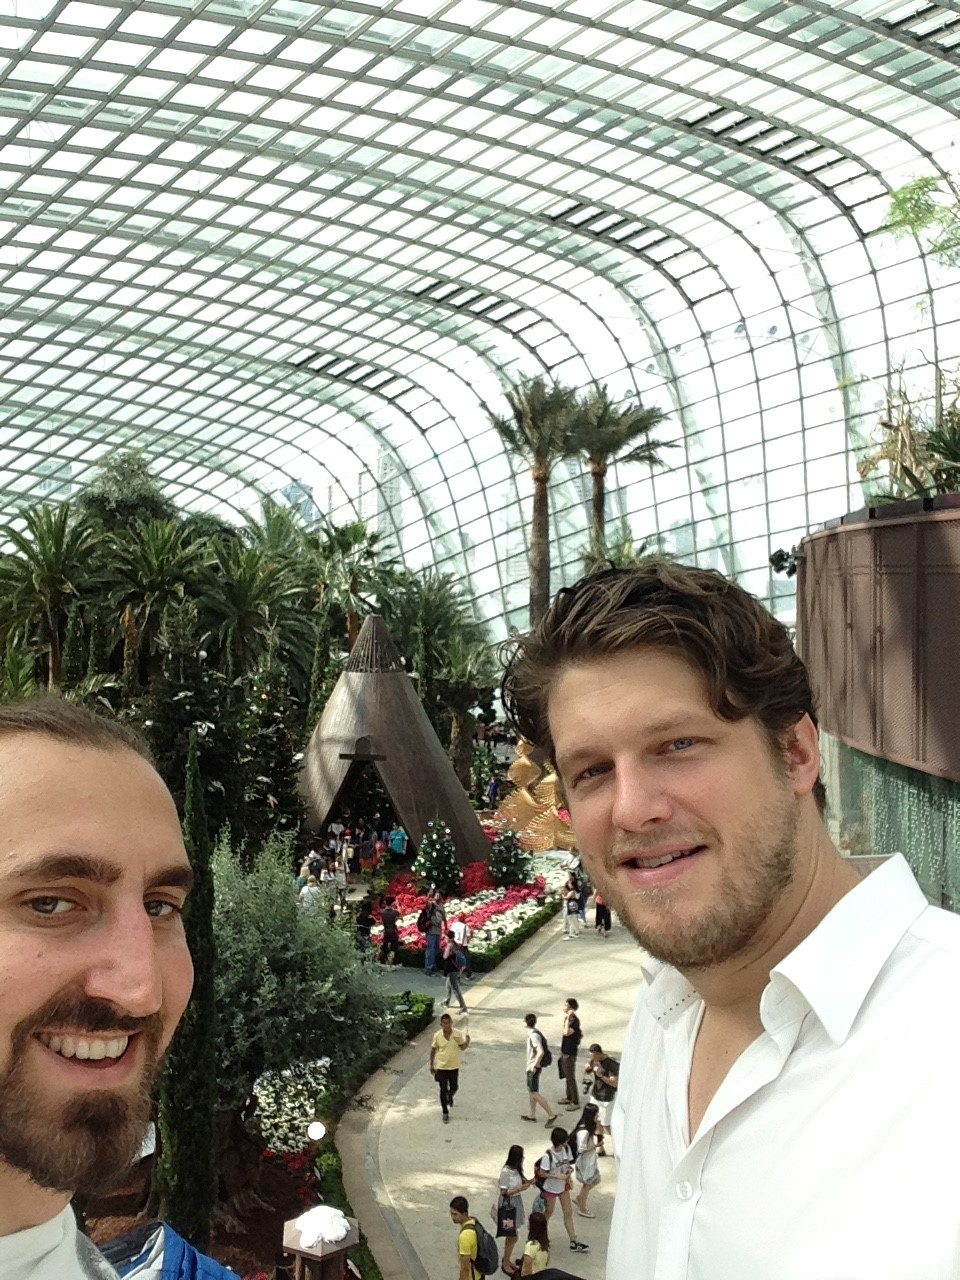 Energy Conservation engineers Max Brownstein and Jens Mozer enjoying the sights of Singapore